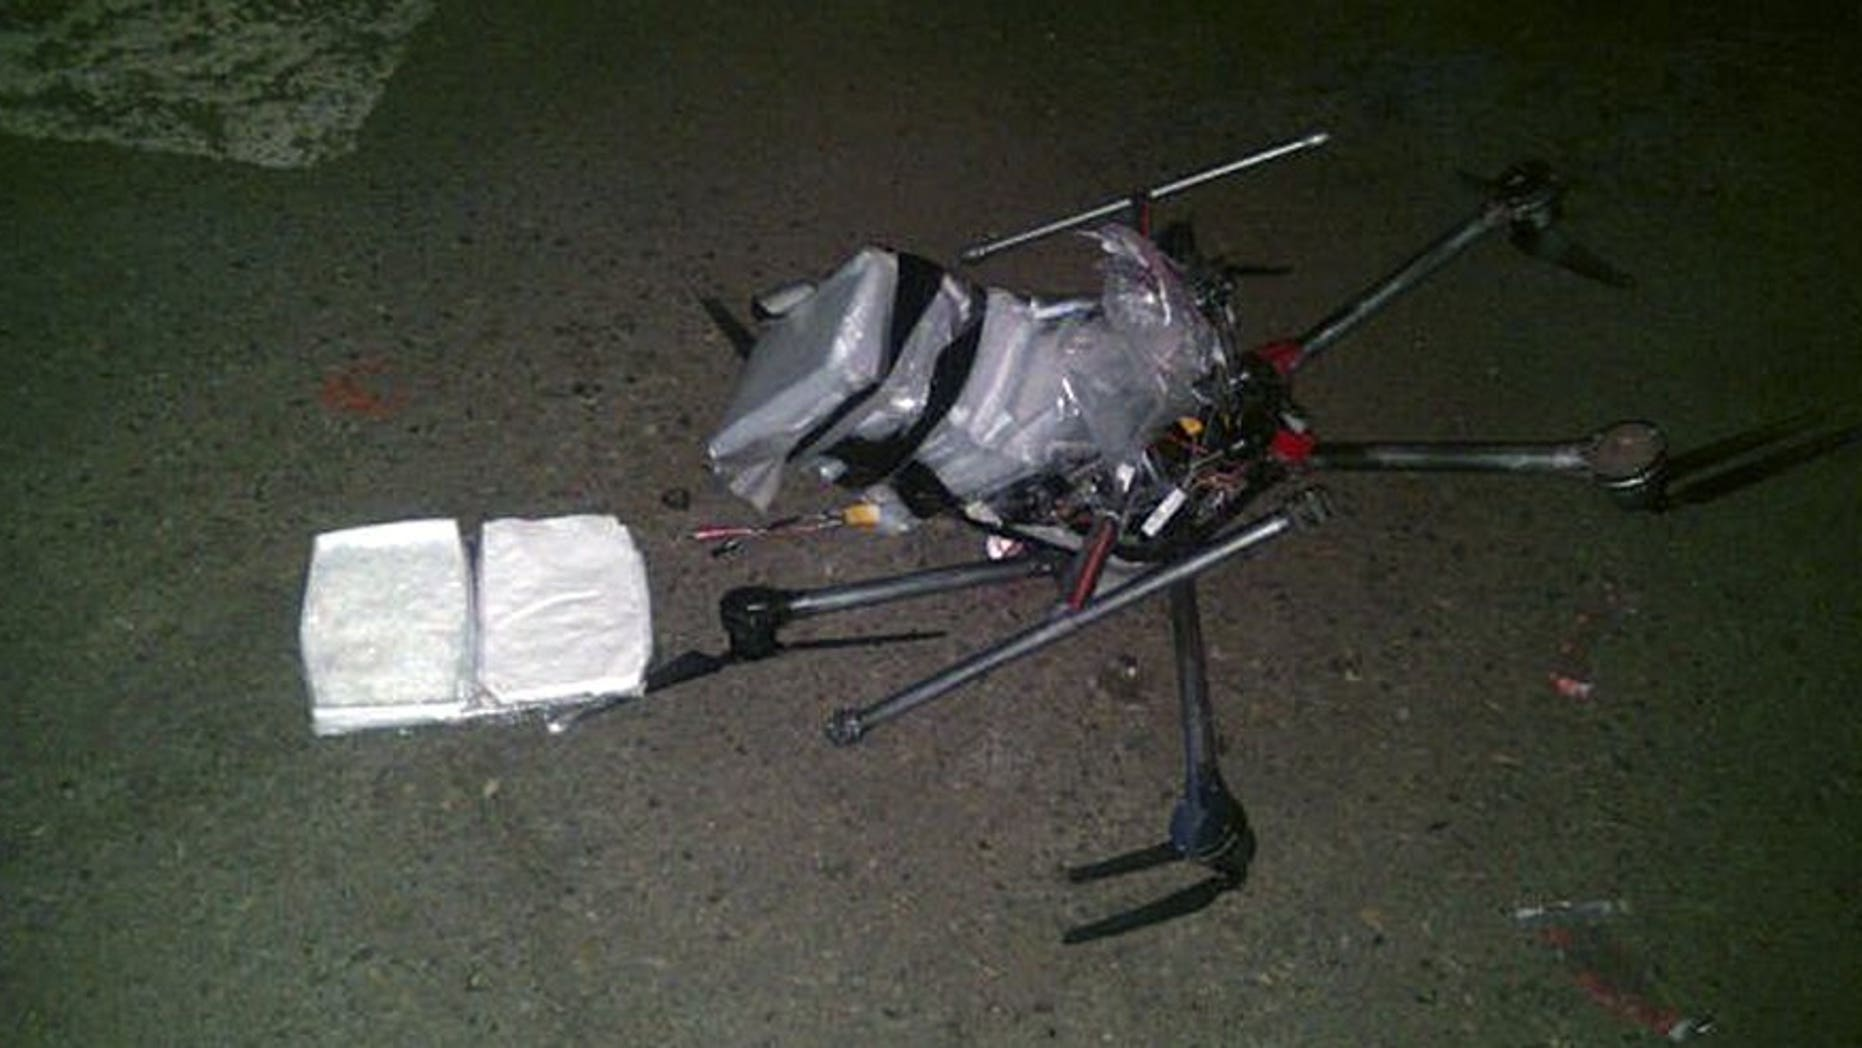 A drone downed in Tijuana, Mexico, in January 2015 carrying methamphetamine. (Photo: Associated Press)